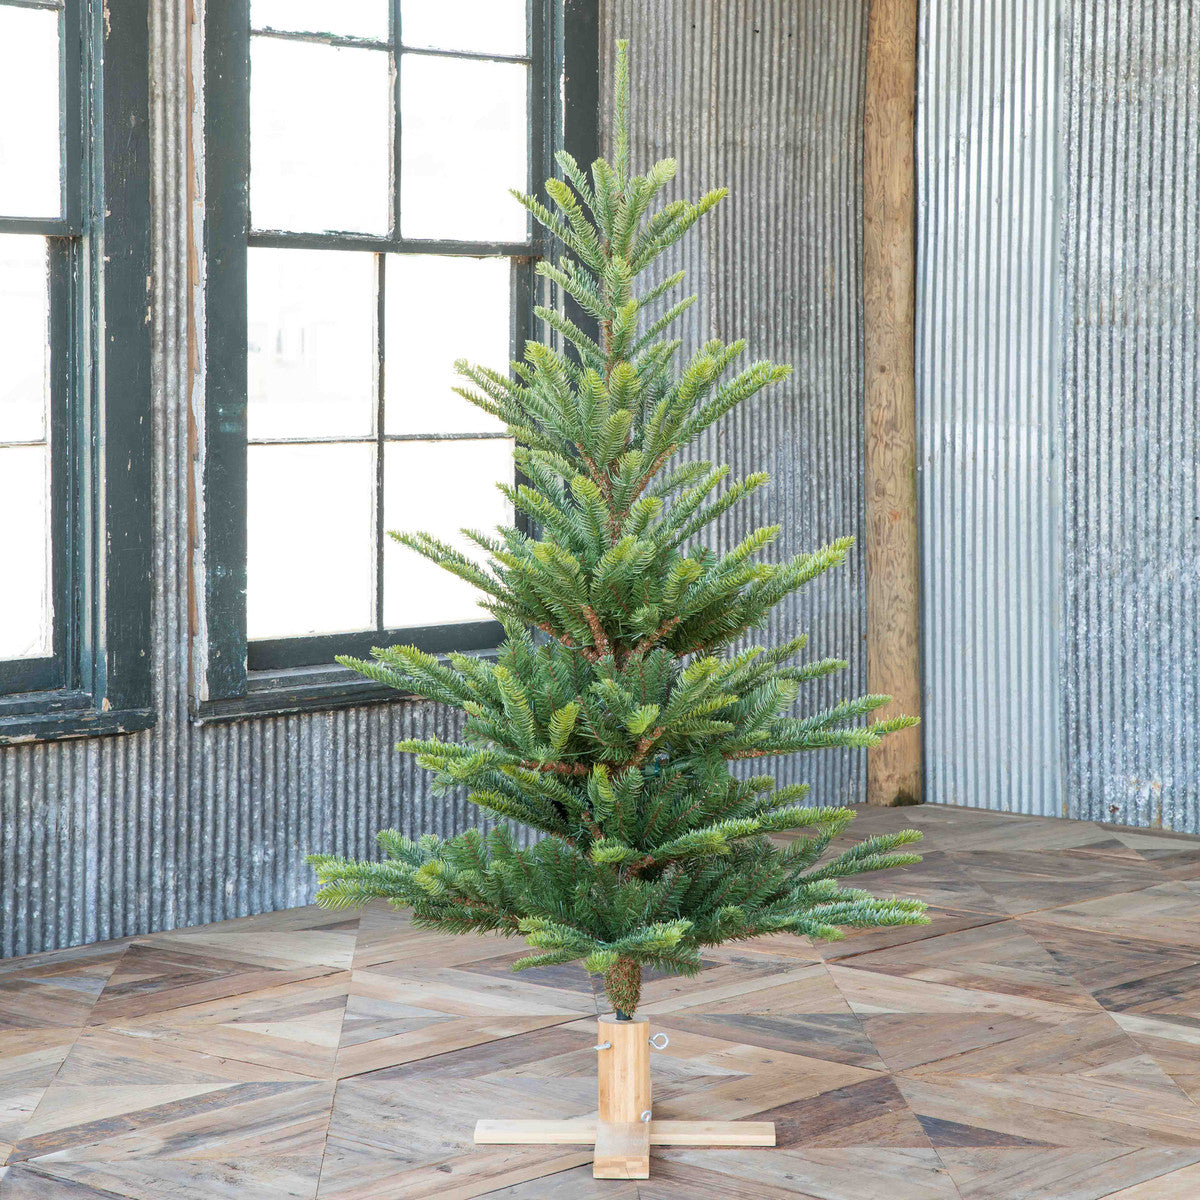 5' Great Northern Spruce Tree with Micro LED Lights